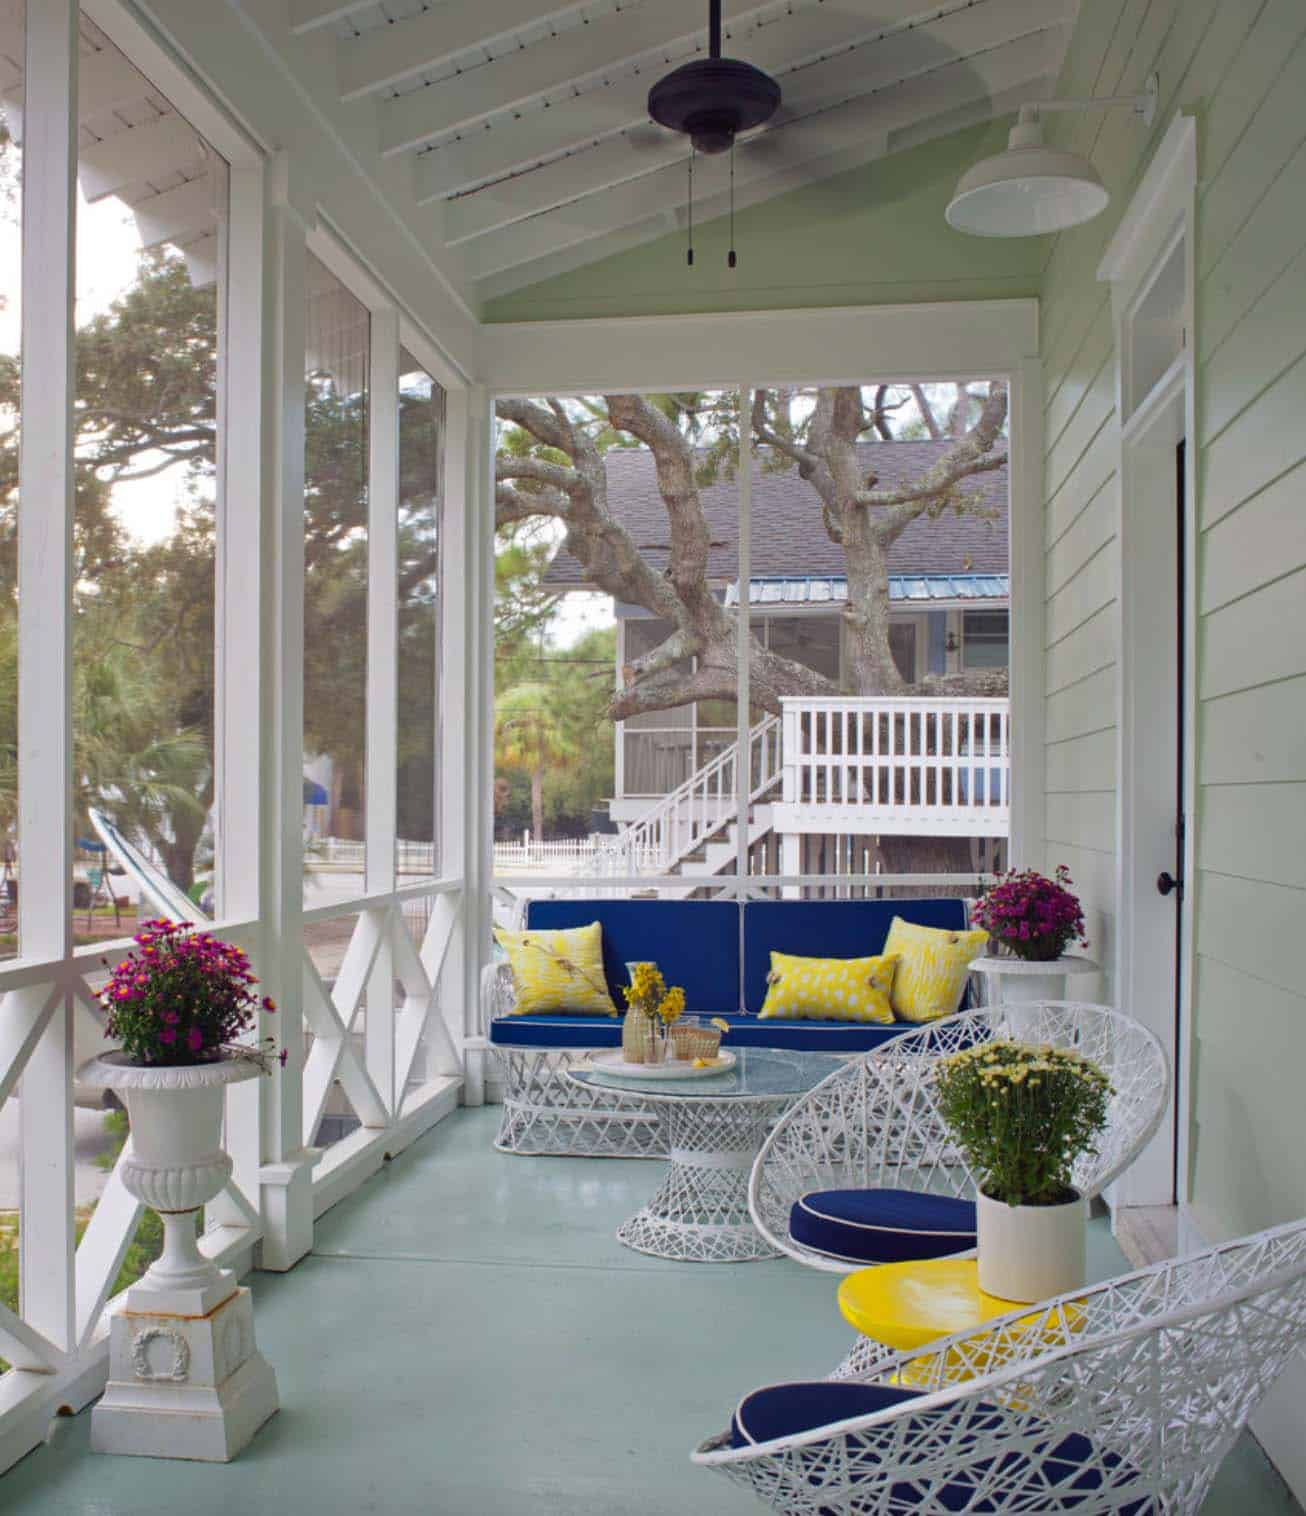 sp12 Great ideas for screened porches that can inspire you